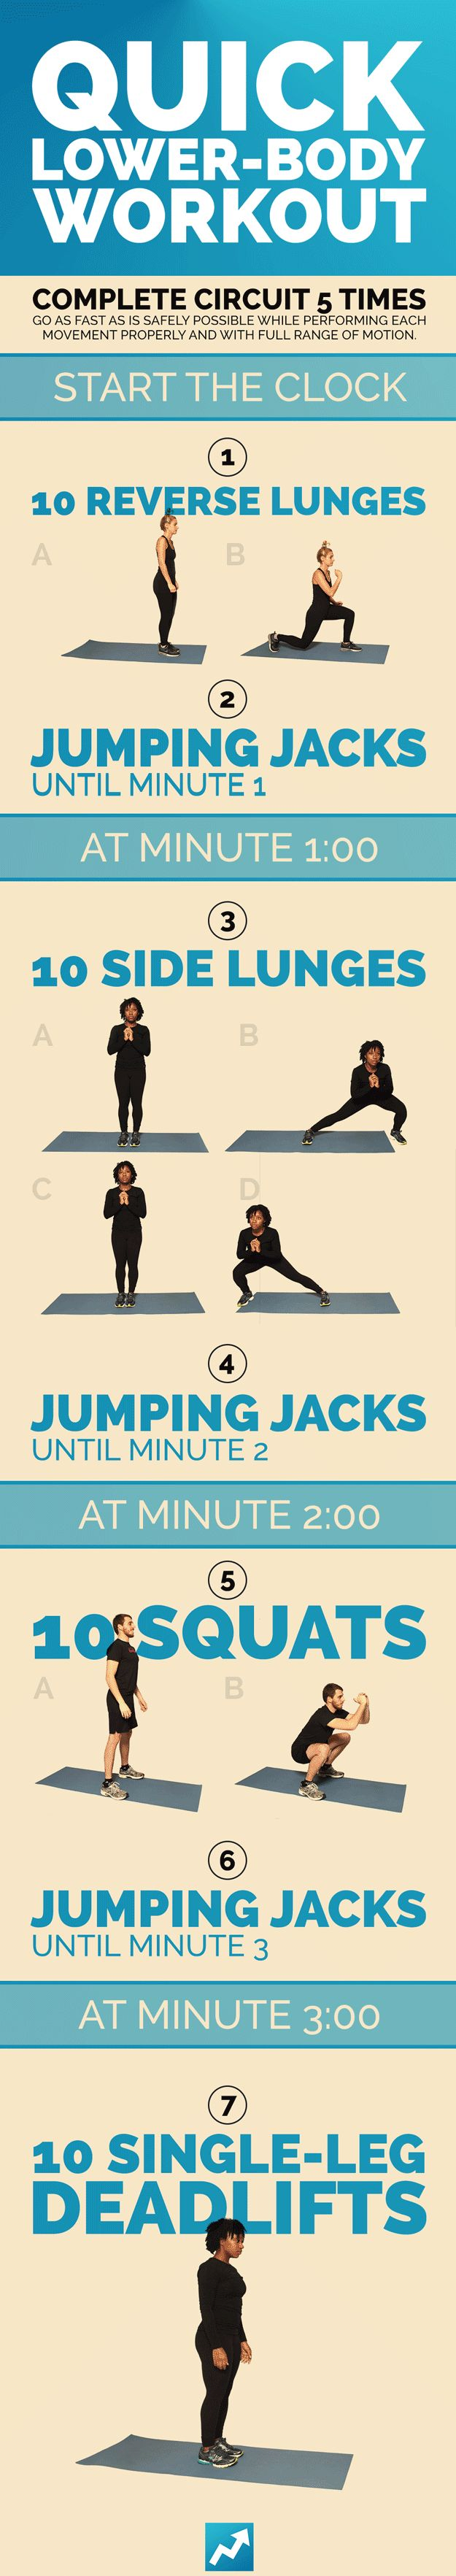 Quick Lower-Body Workout | 9 Quick Total-Body Workouts, No Equipment Needed